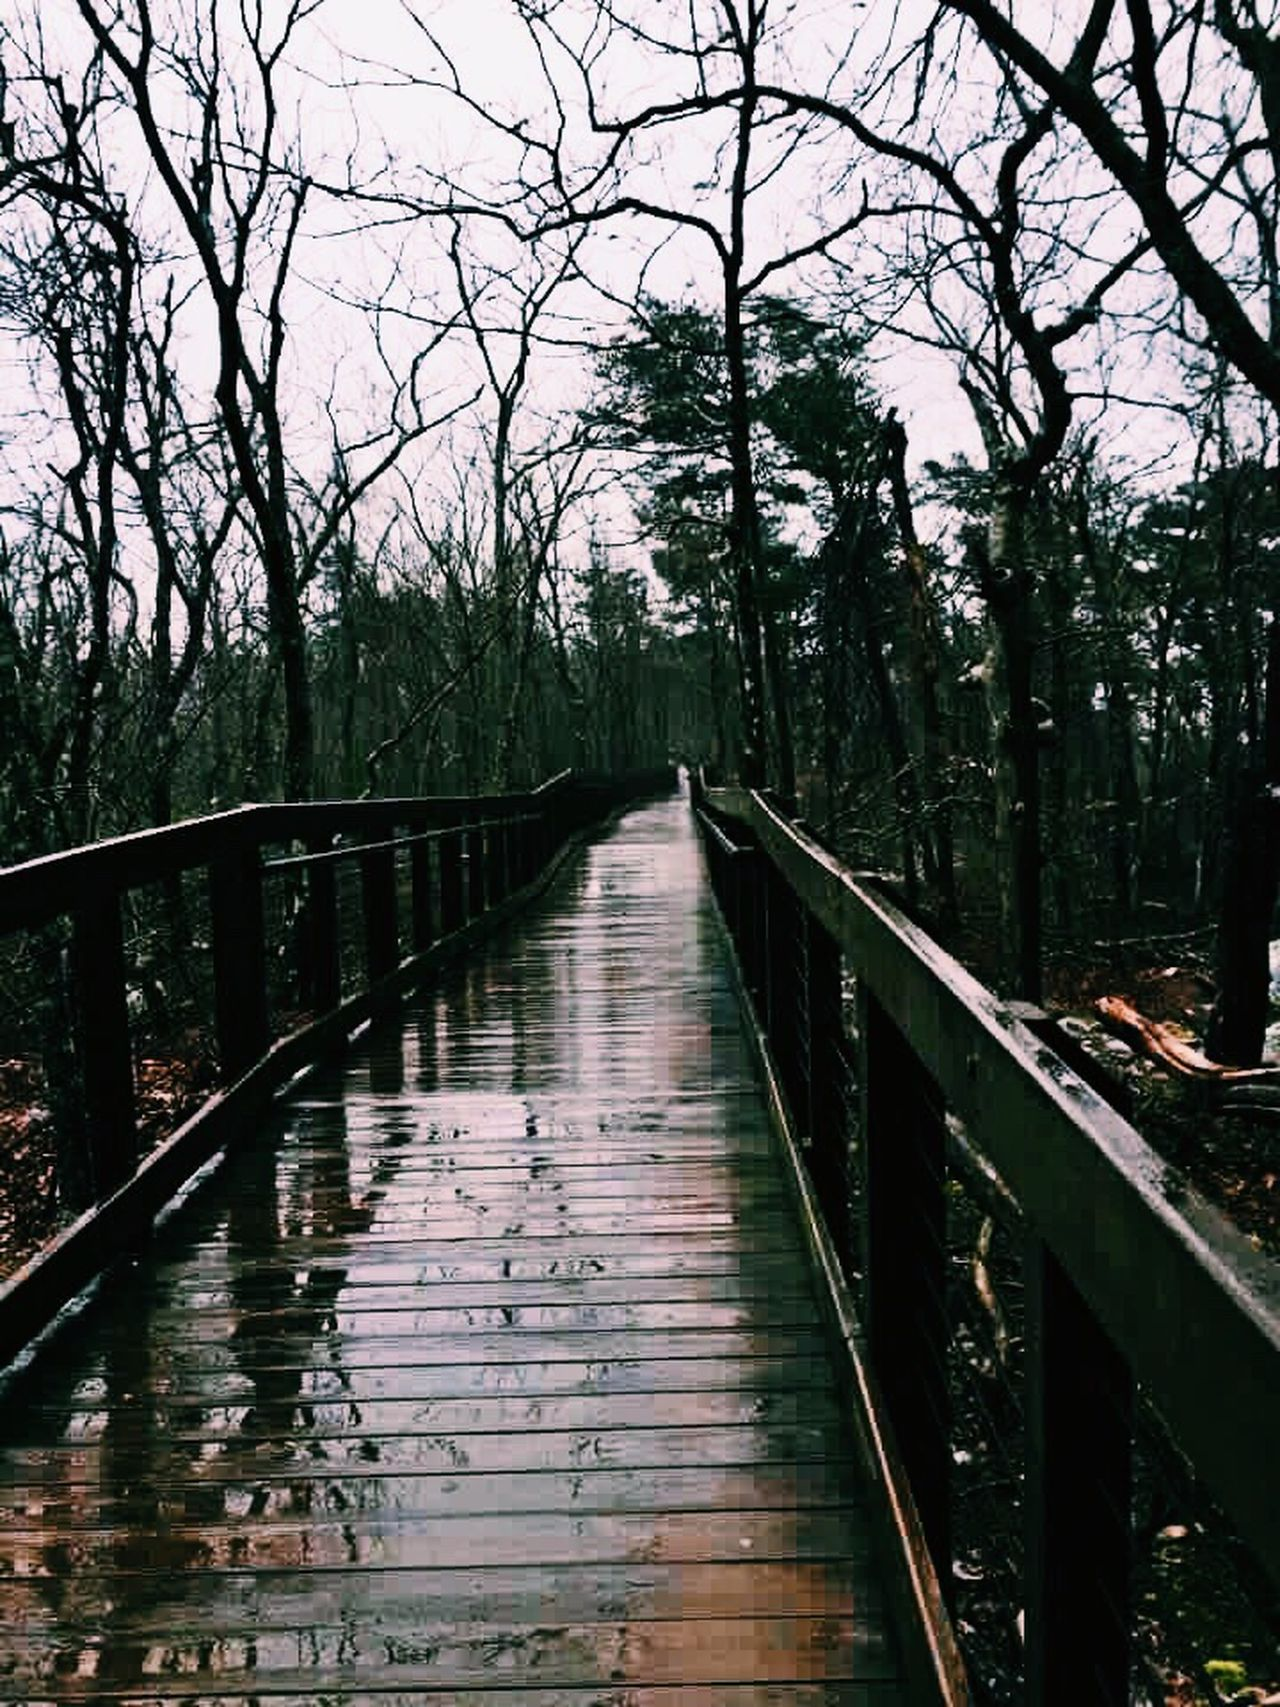 😌🍃🌨 Rain Photography Walking Bridge Wet Nature